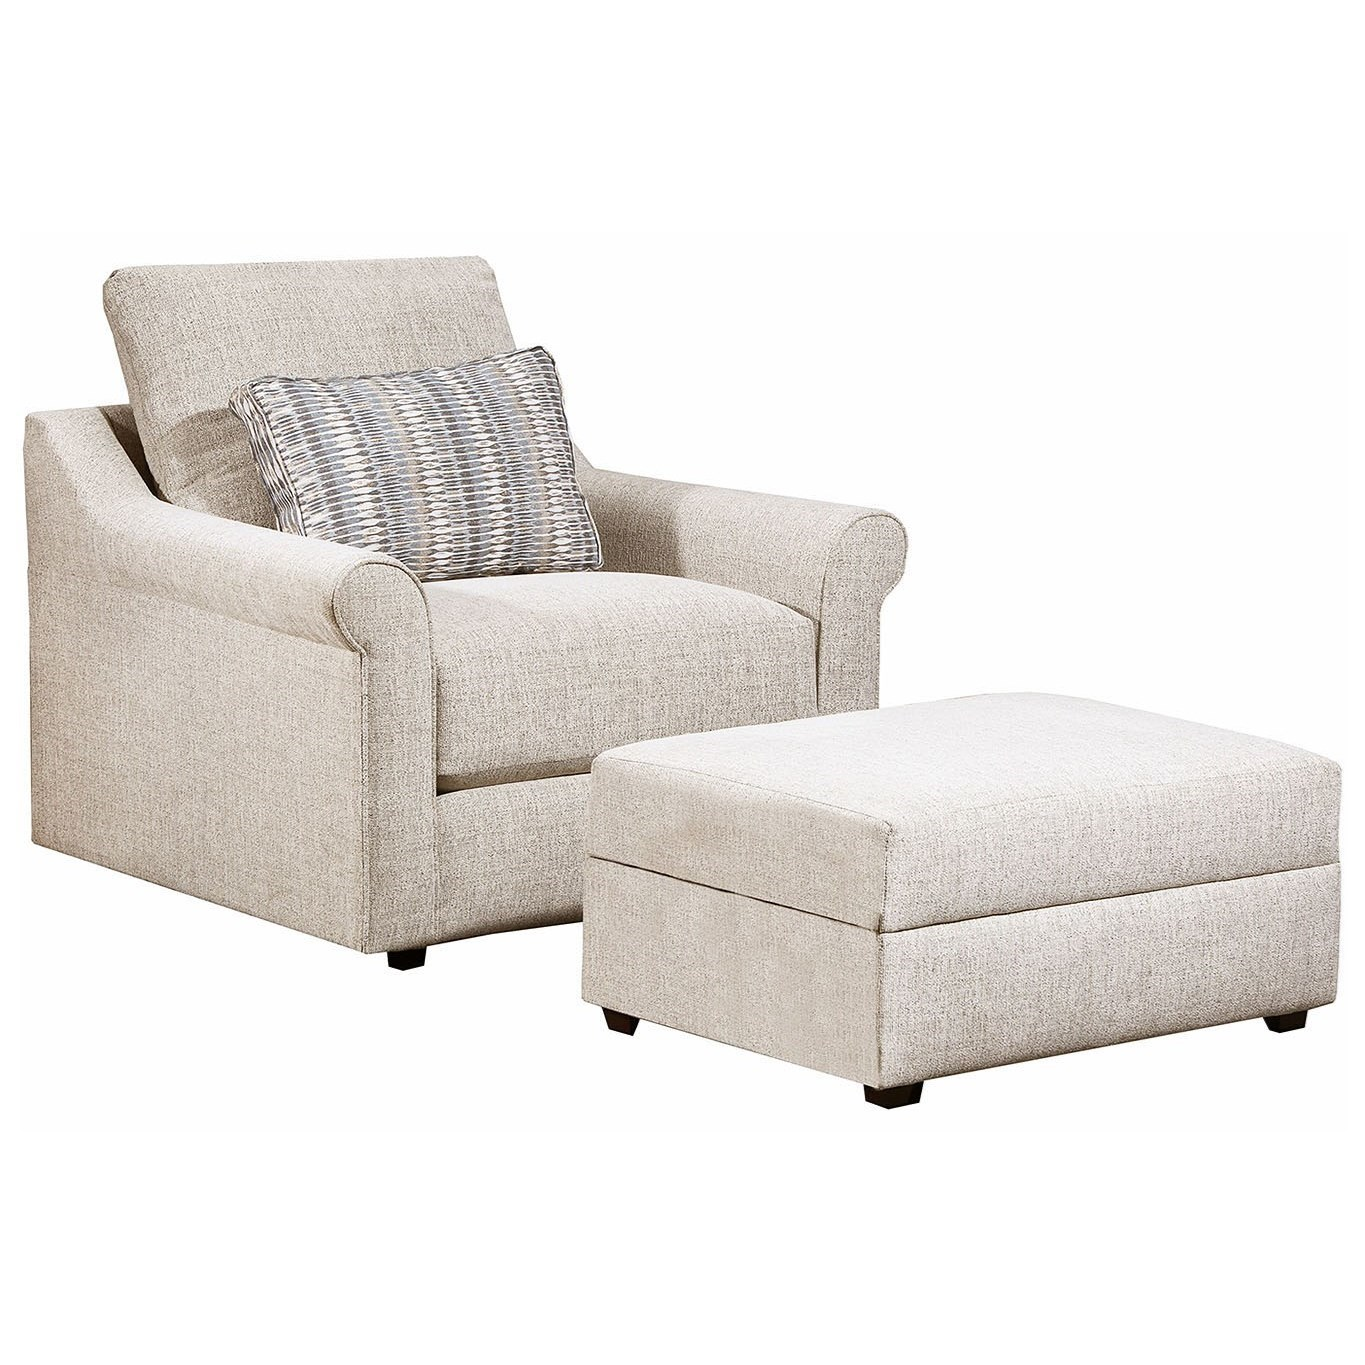 9910 Chair and Ottoman by United Furniture Industries at Dream Home Interiors